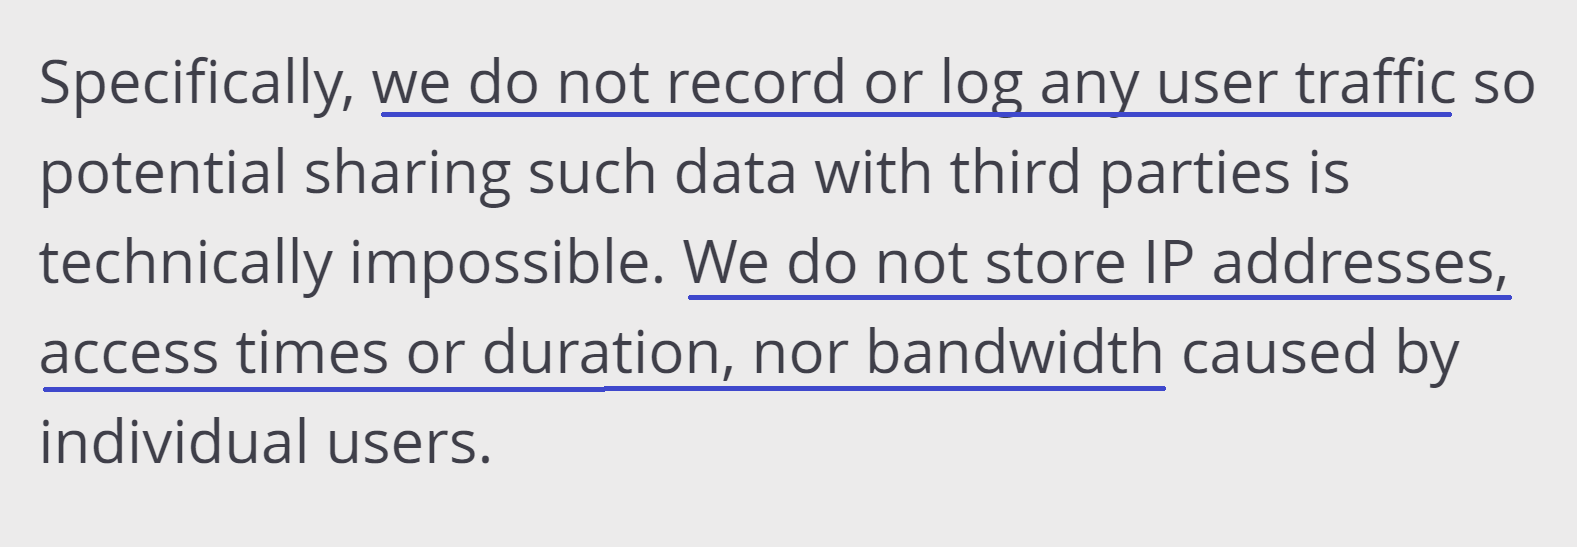 perfectprivacy_logging_policy